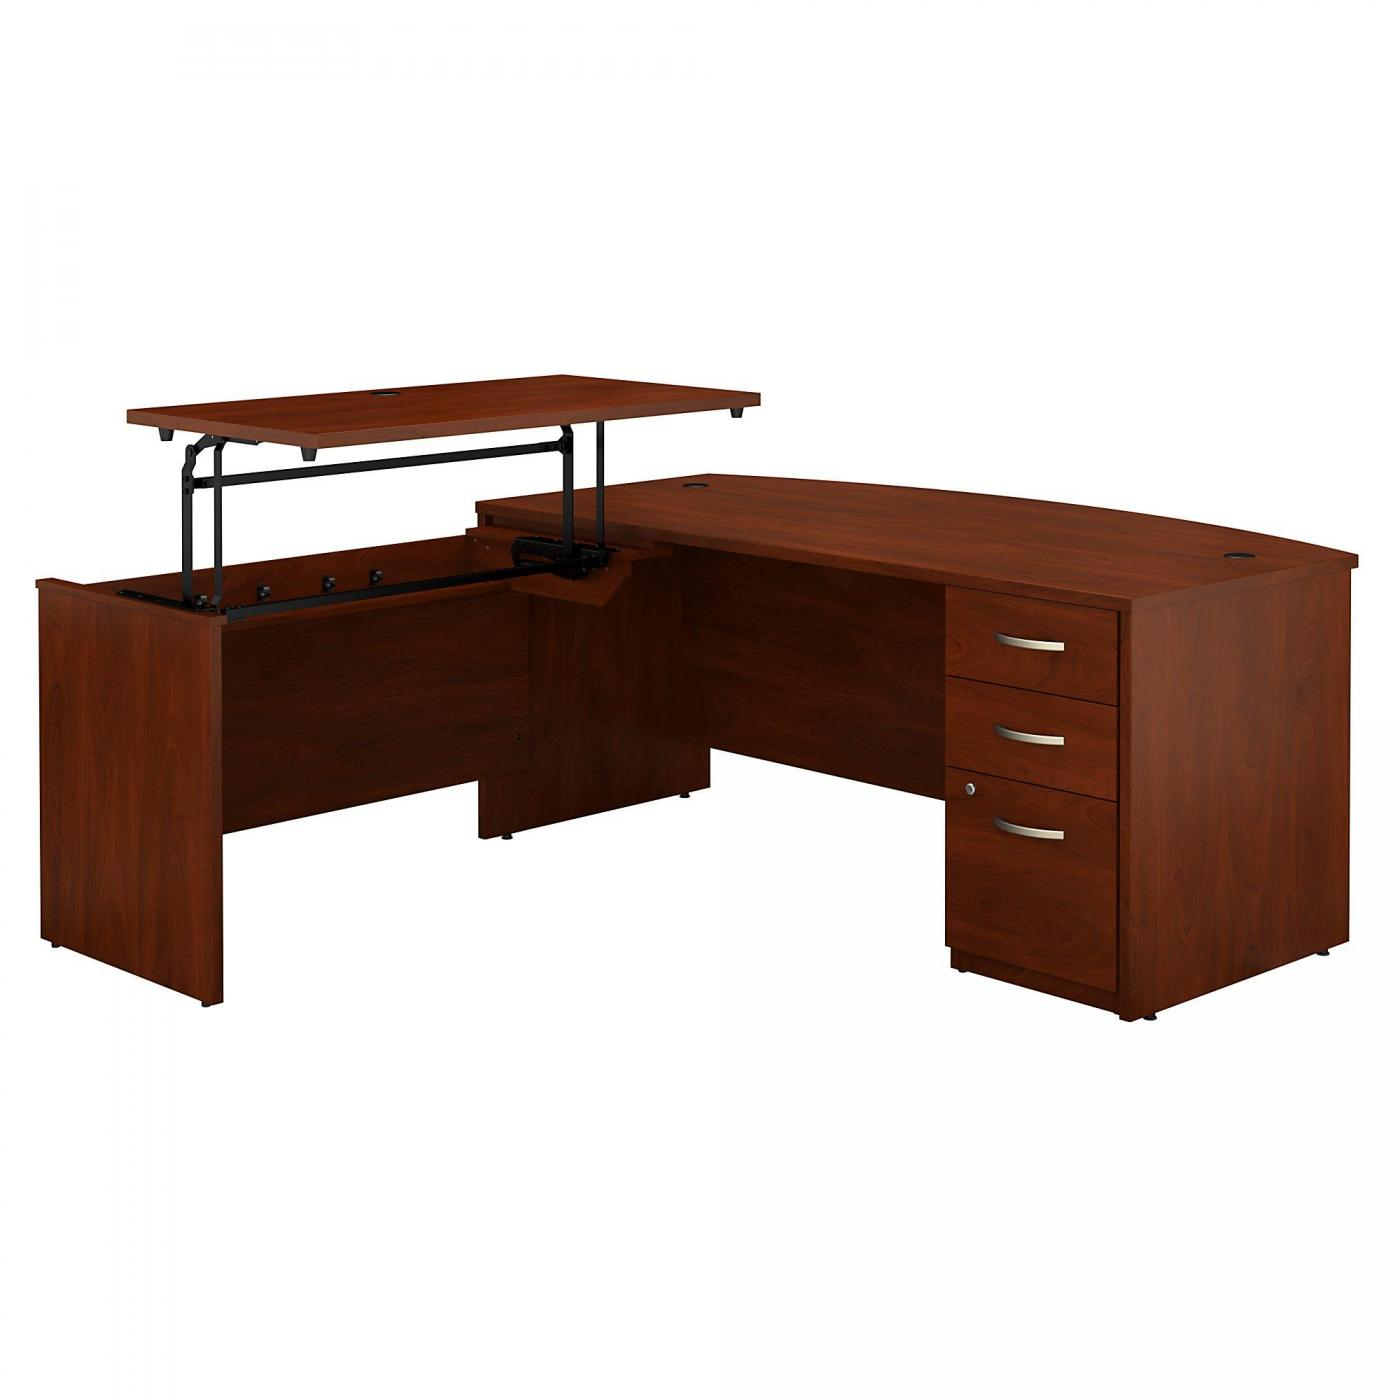 </b></font><b>BUSH BUSINESS FURNITURE SERIES C ELITE 72W X 36D 3 POSITION SIT TO STAND BOW FRONT L SHAPED DESK WITH 3 DRAWER FILE CABINET. FREE SHIPPING. VIDEO:</font> <p>RATING:&#11088;&#11088;&#11088;&#11088;&#11088;</b></font></b>